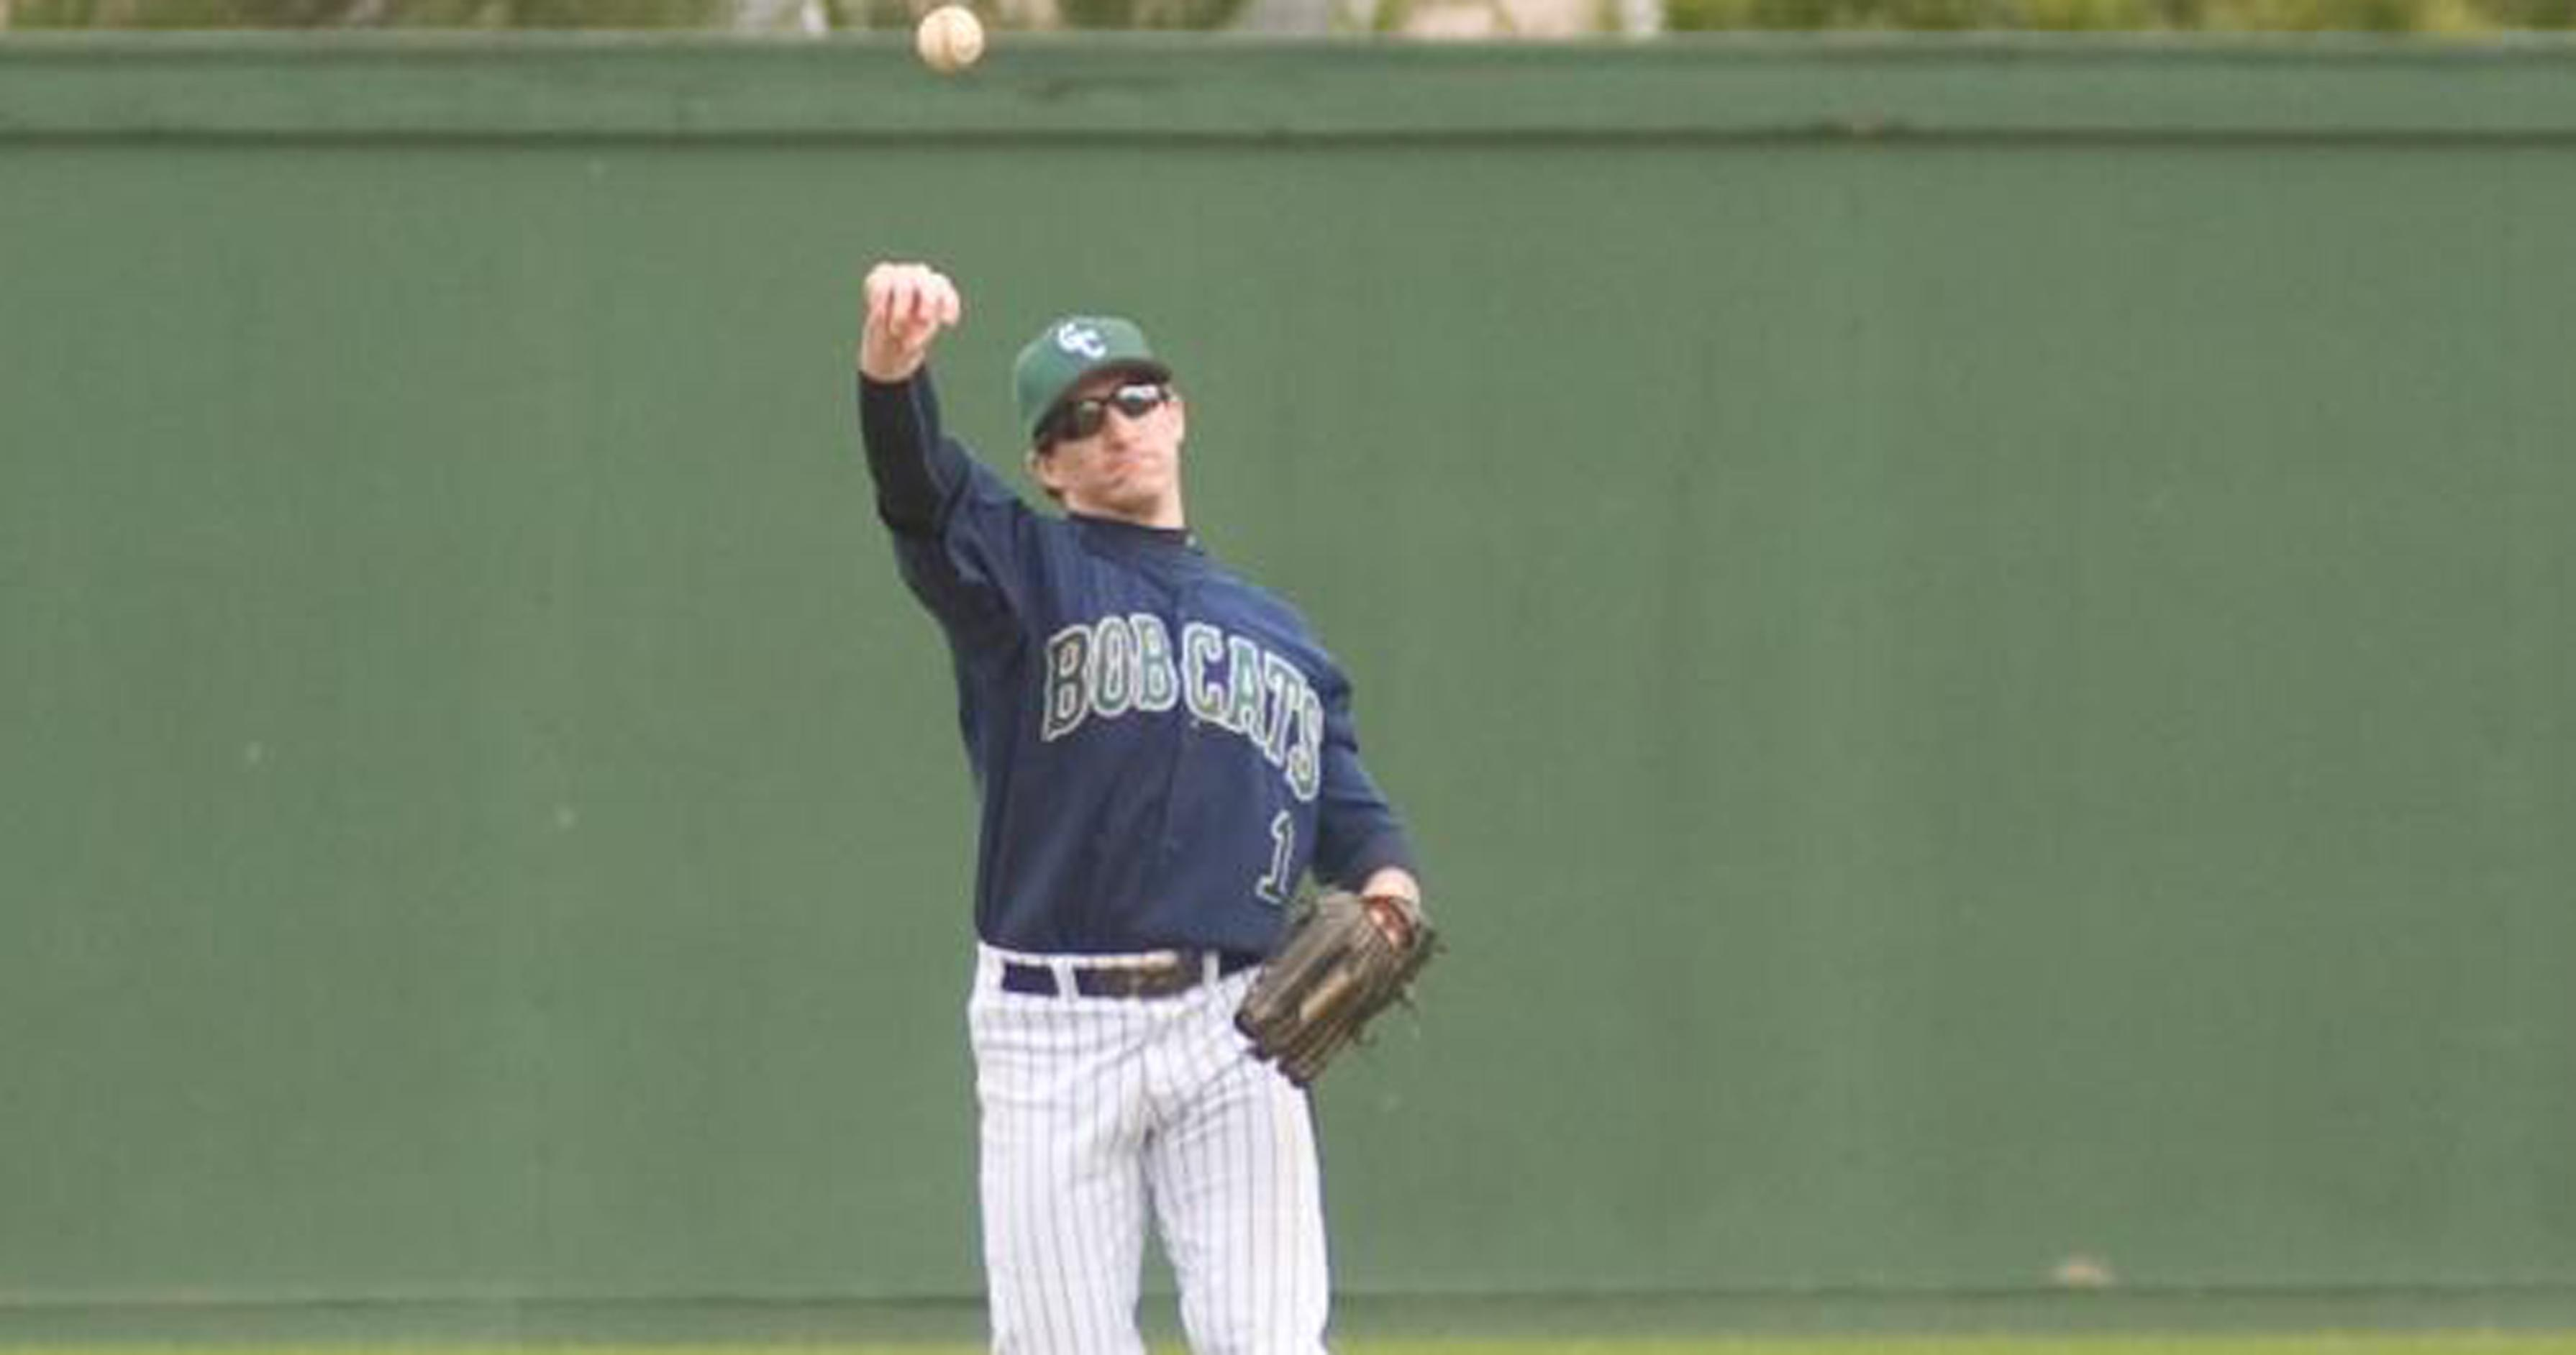 #19 Baseball's Harrell Adds Another GCSU Athlete of the Week